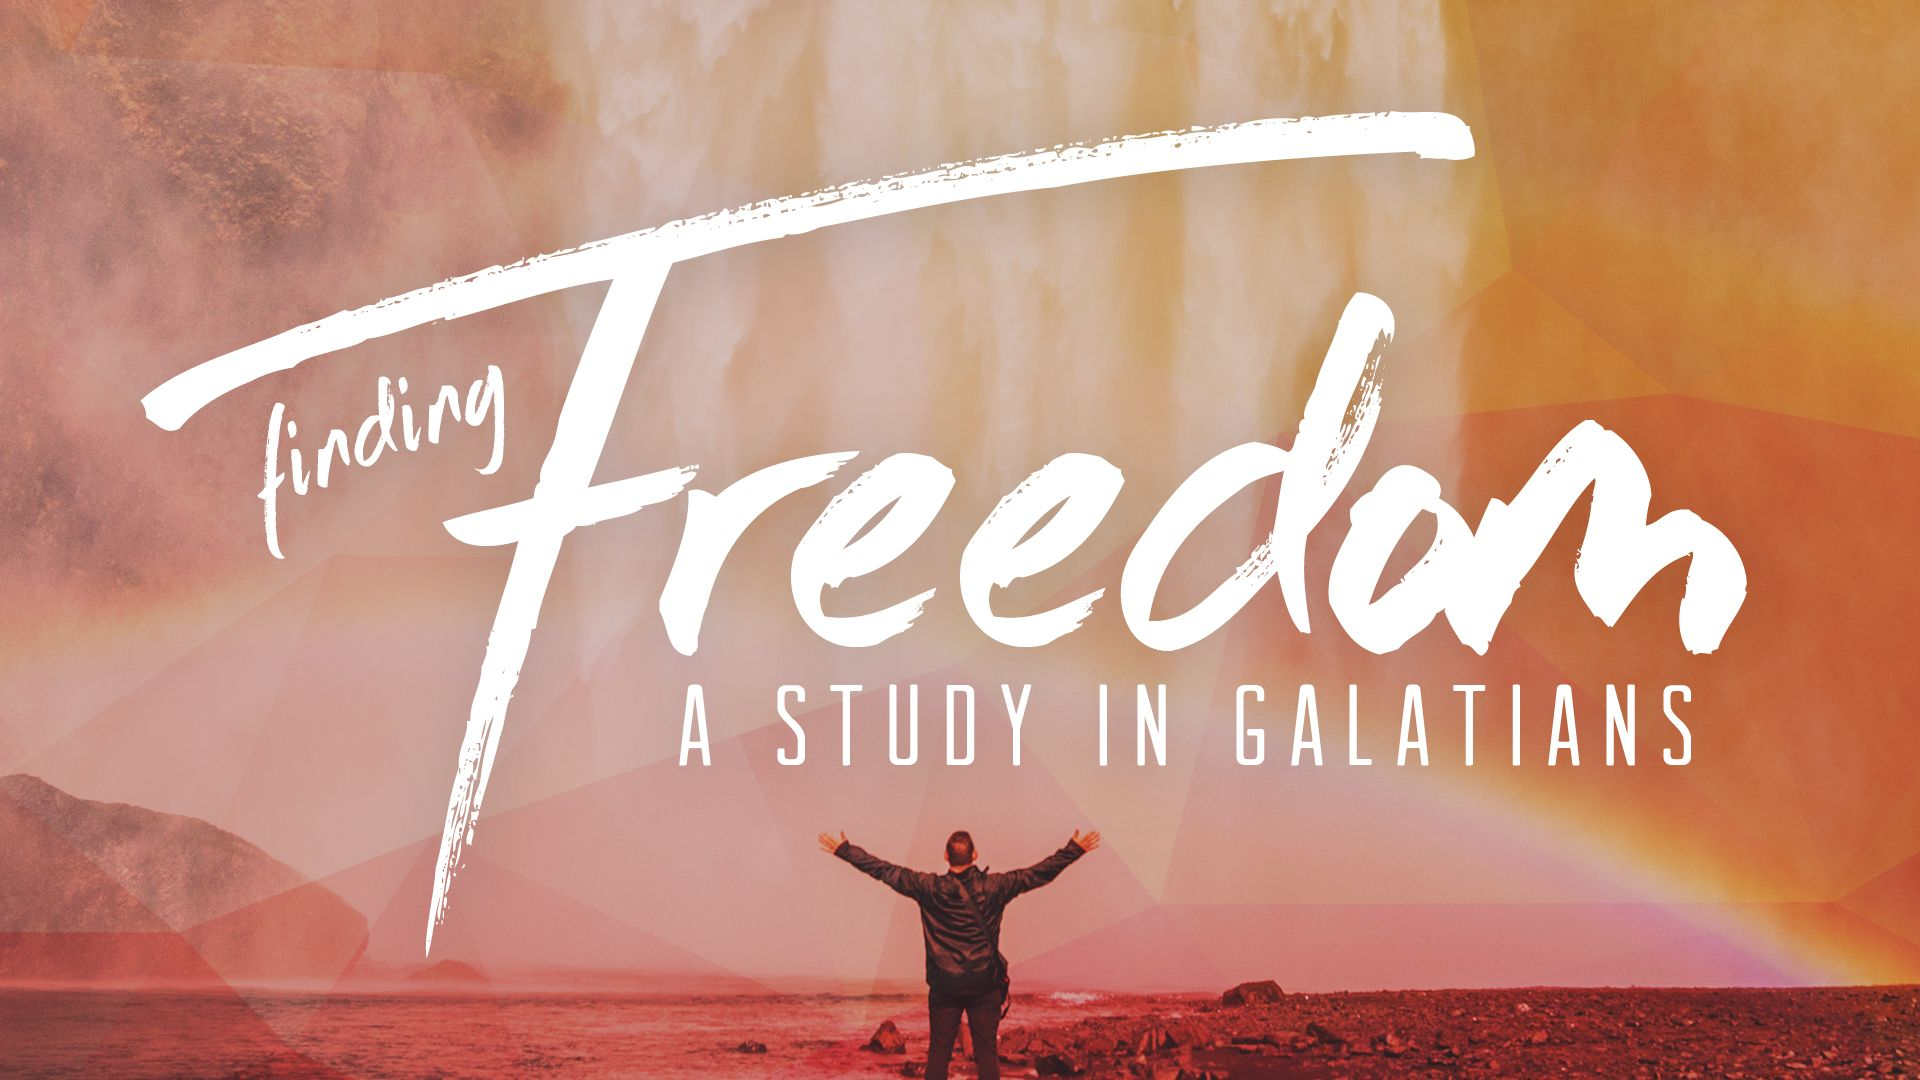 This sermon series body of work was designed around the theme of this sermon series body of work was designed around the theme of finding freedom ccuart Image collections